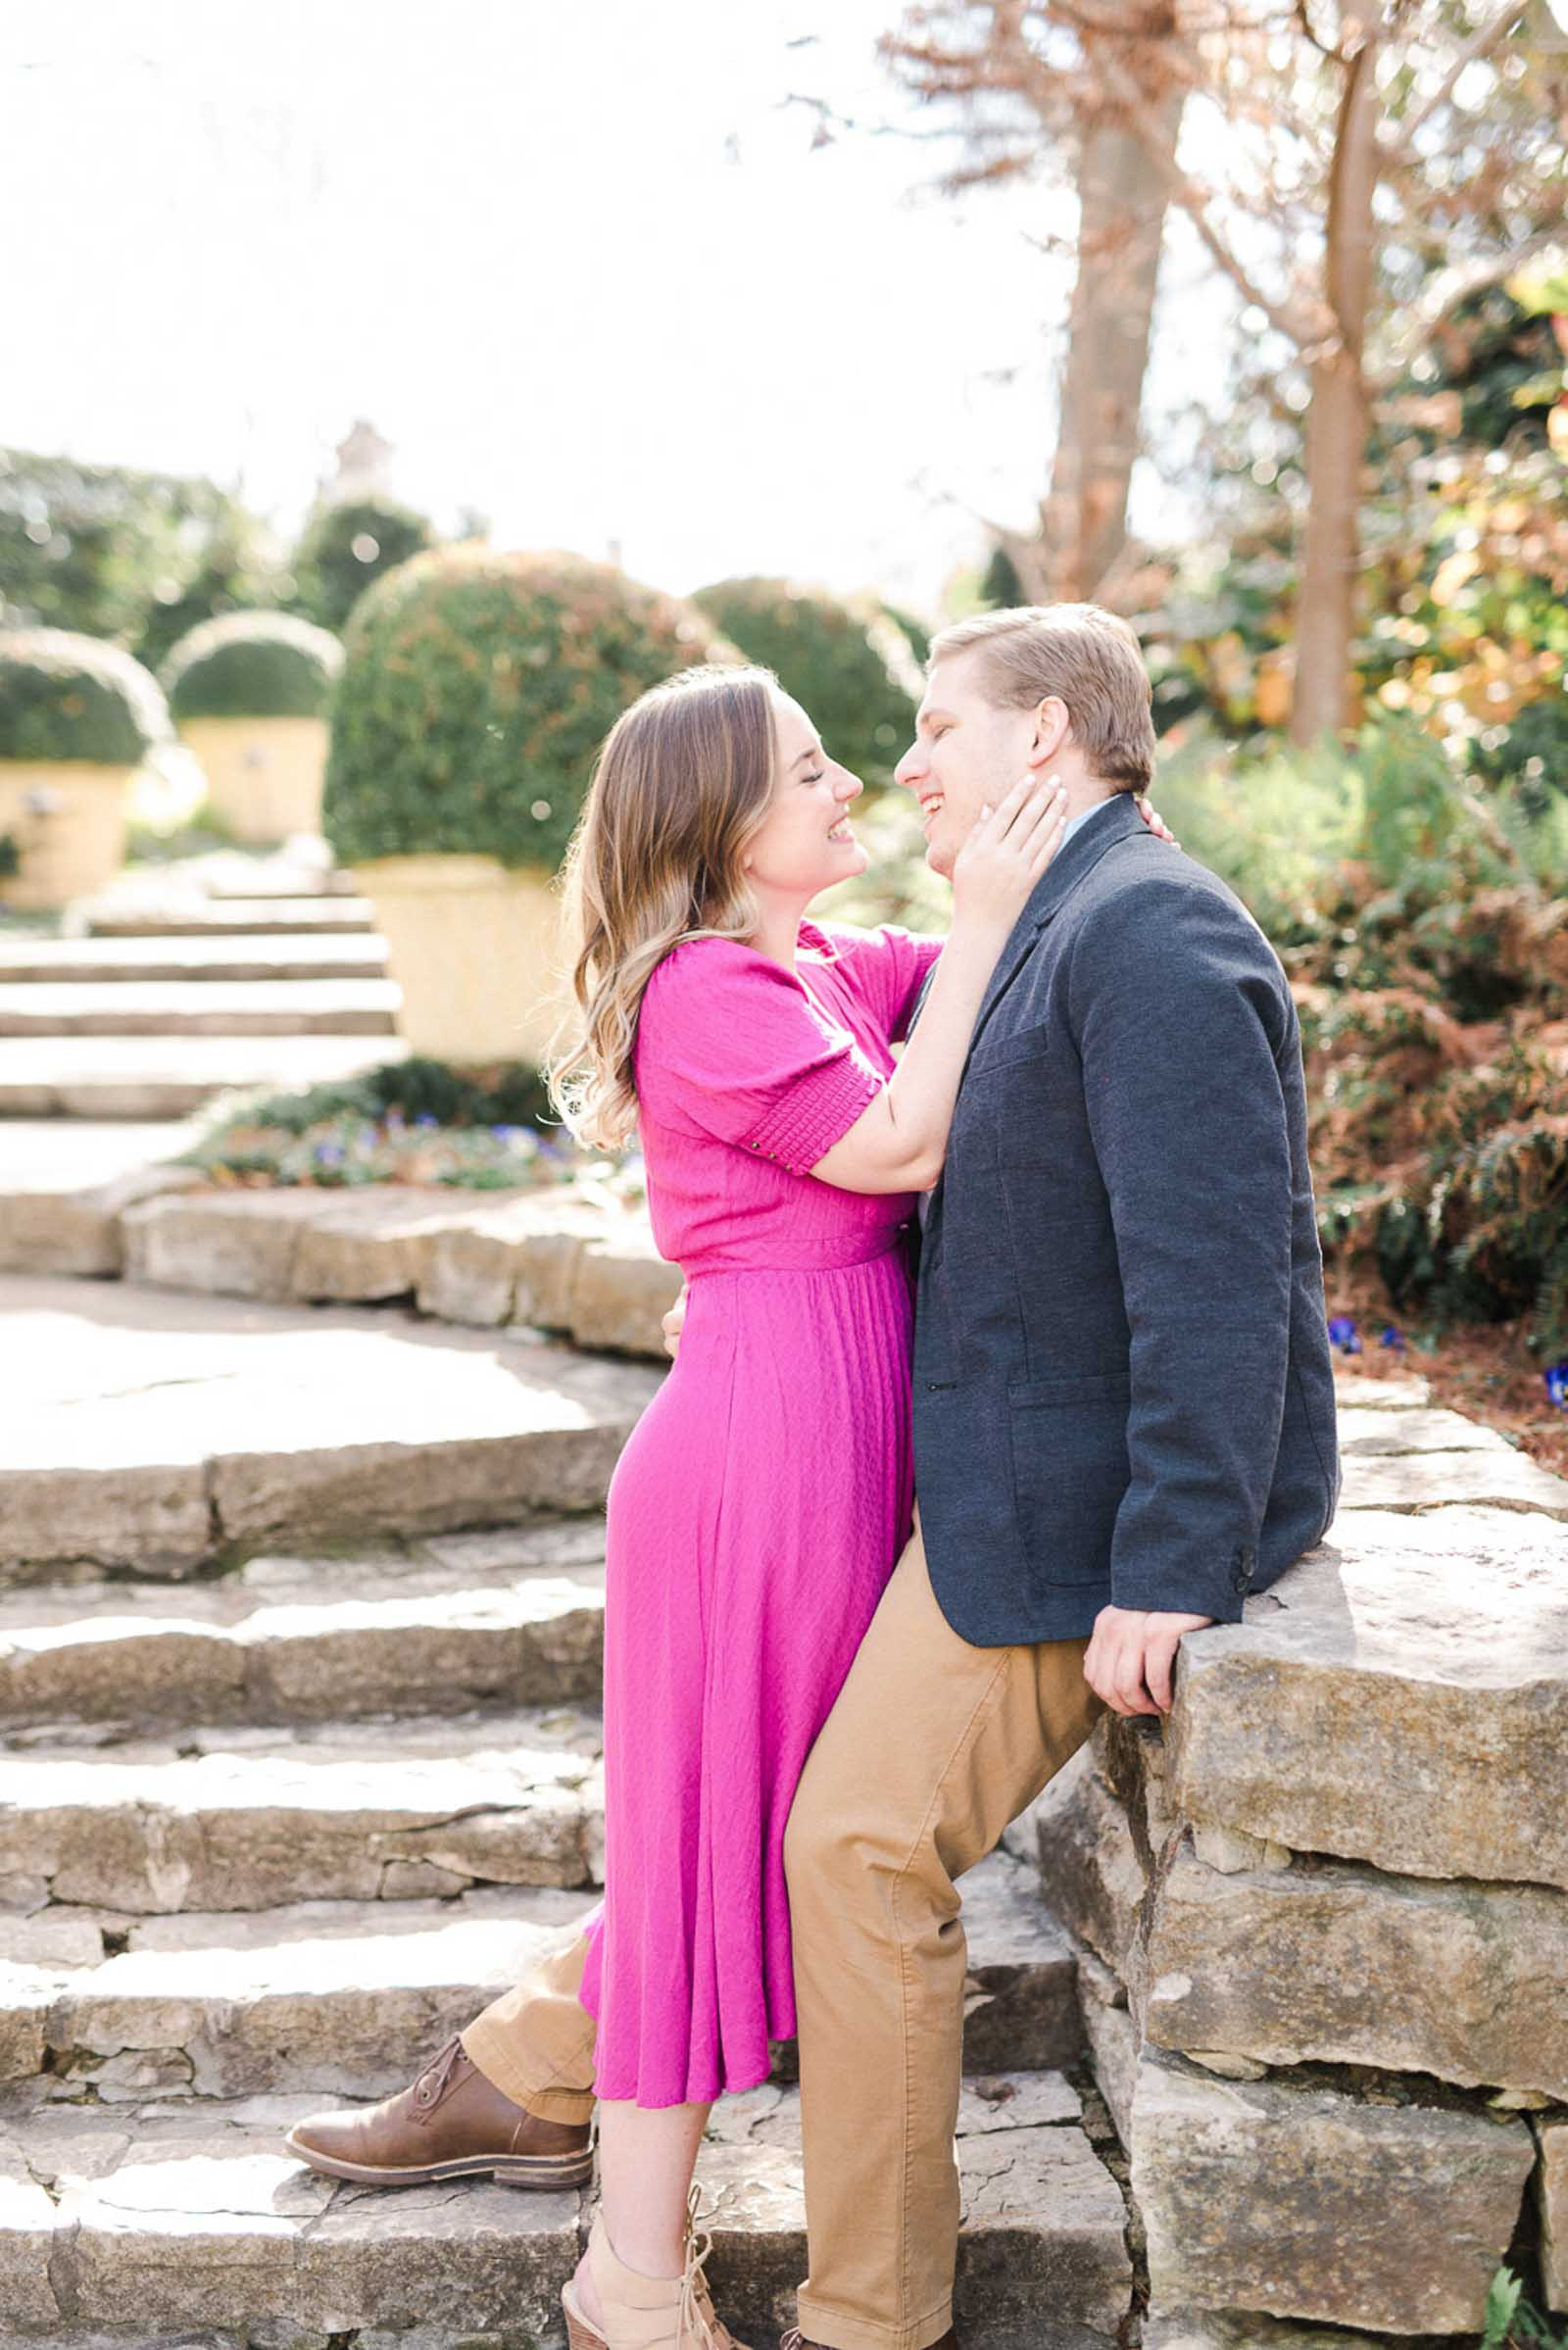 Dallas Arboretum Engagement-JenSymes-11.jpg